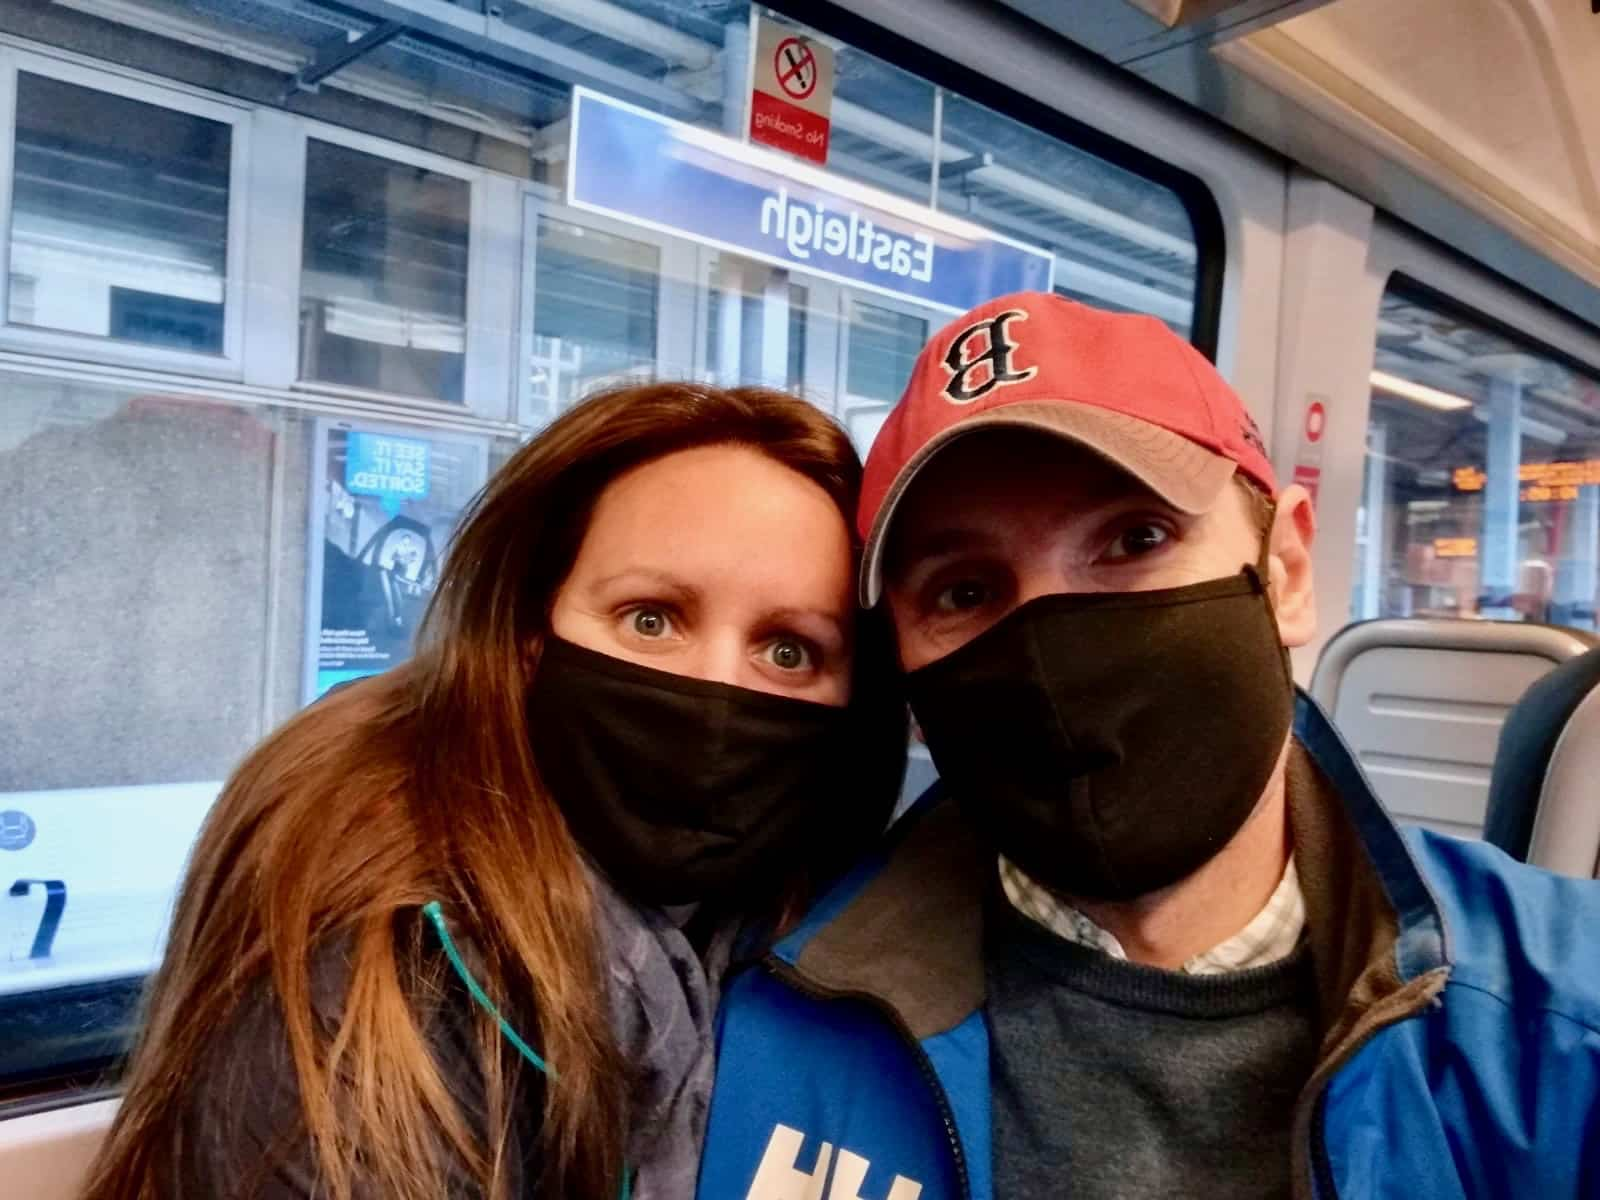 Us with Covid masks on the train to the airport